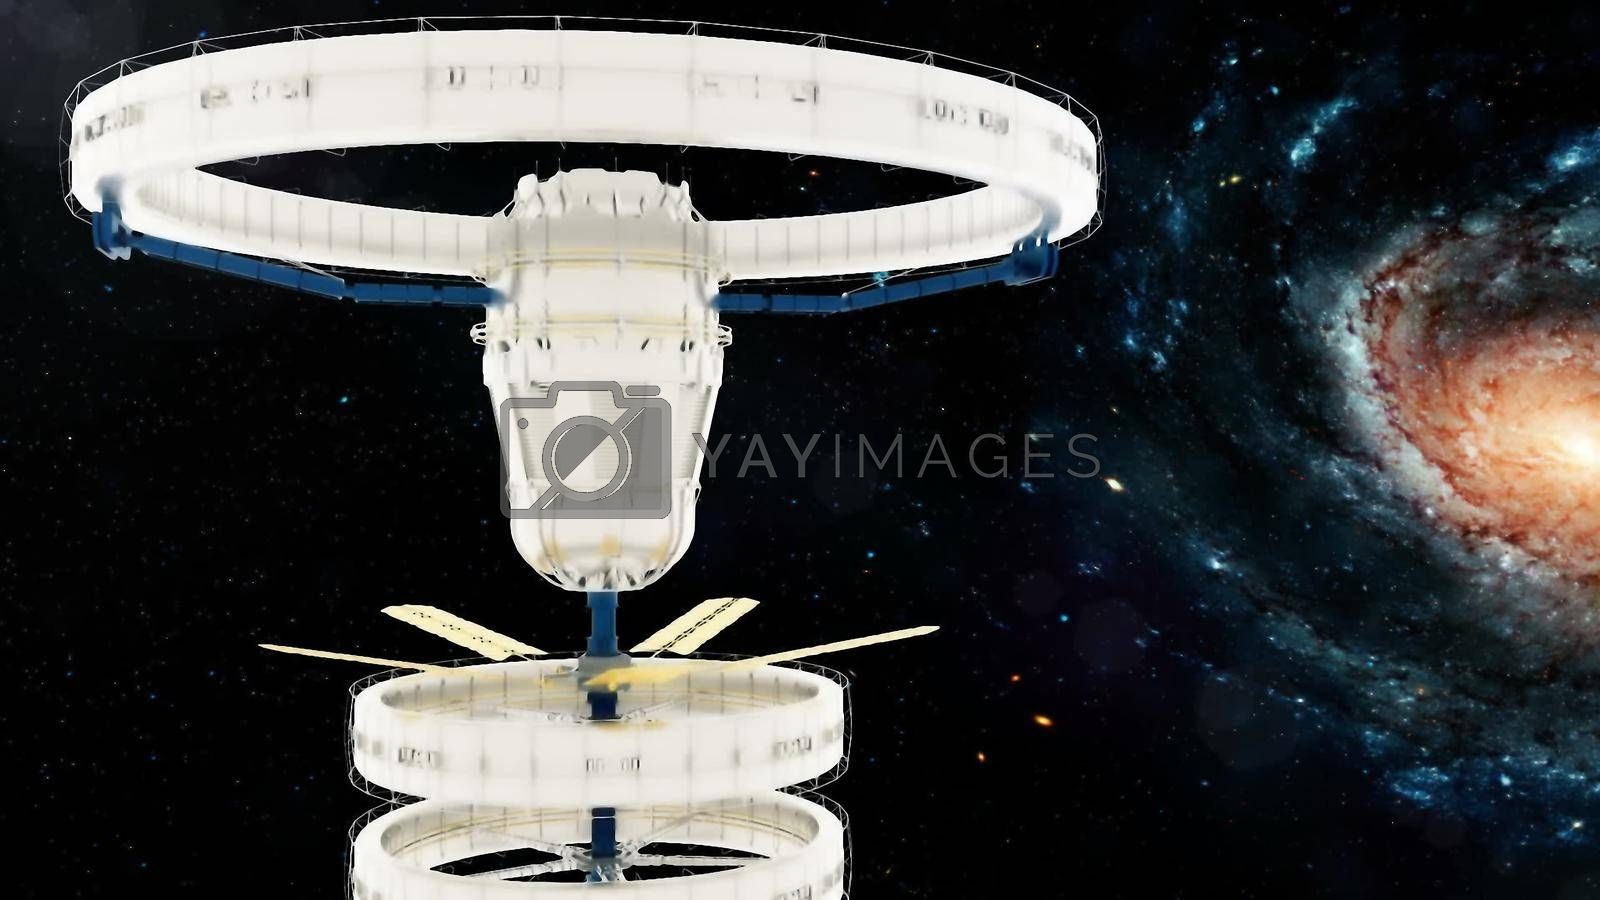 Space station flies around the Galaxy. 3d rendering